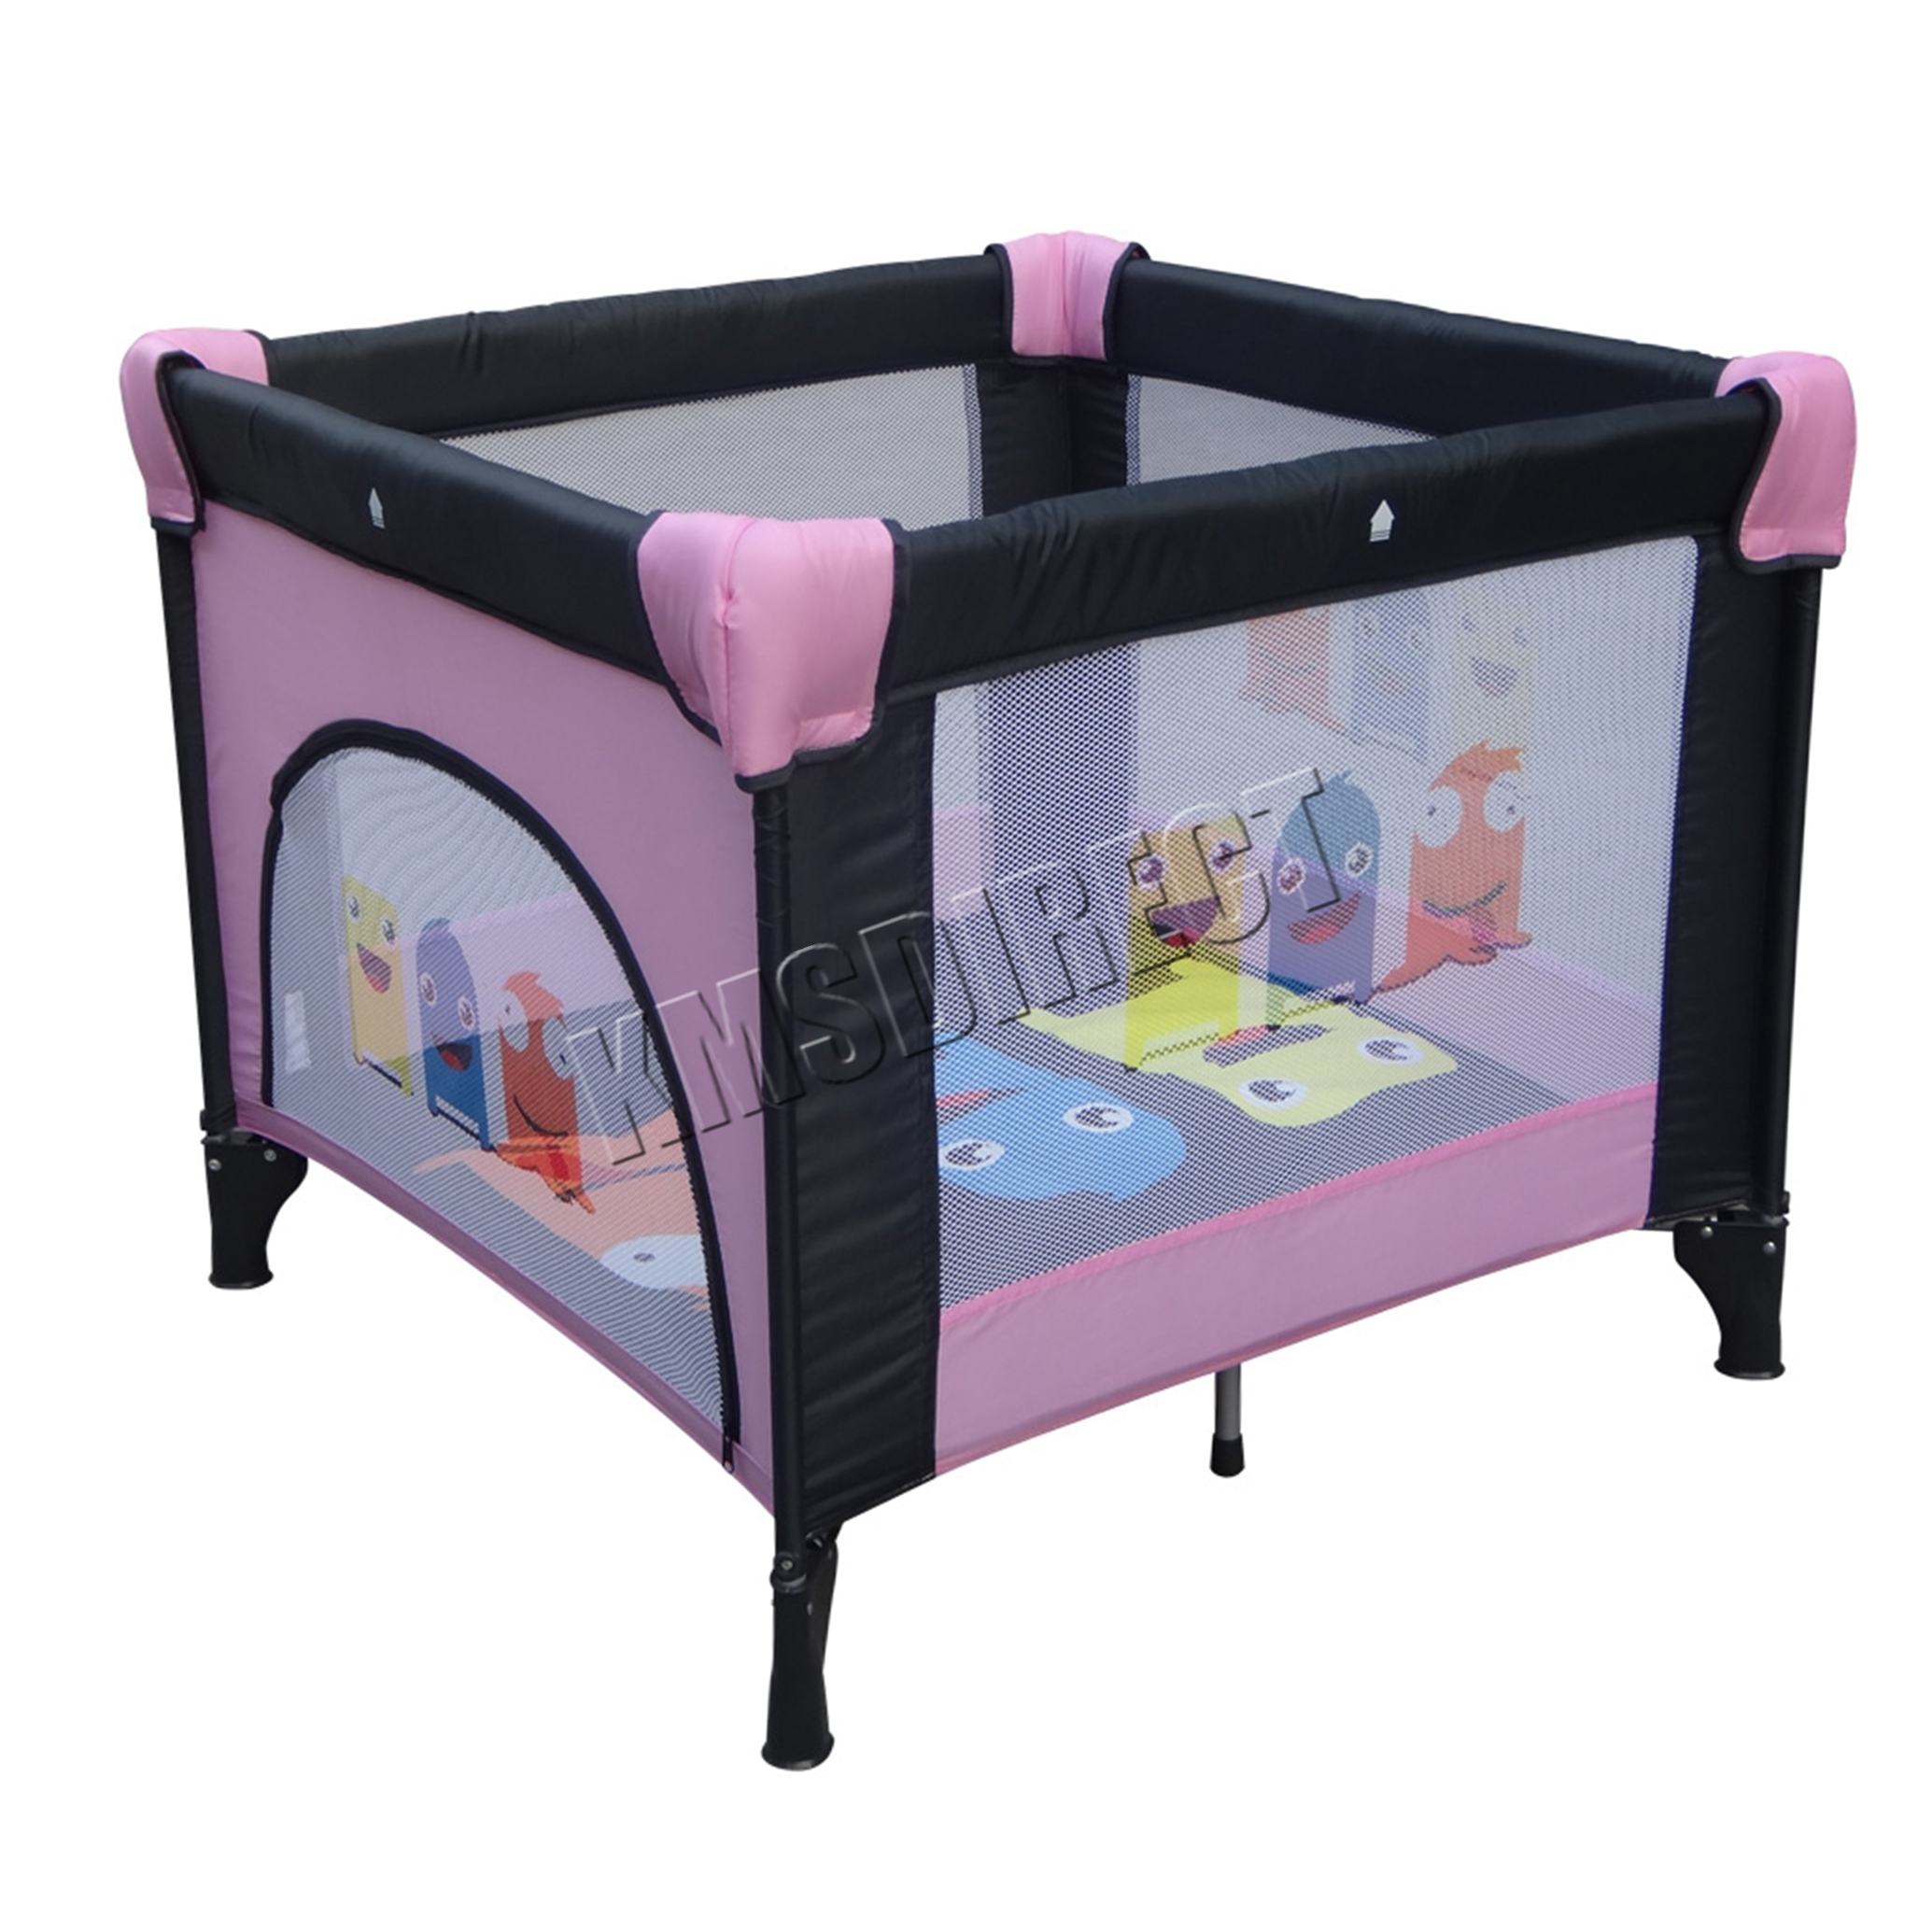 playpens for baby baby playpens feb c  bd  - foxhunter baby travel playpen infant square cot bed play pen